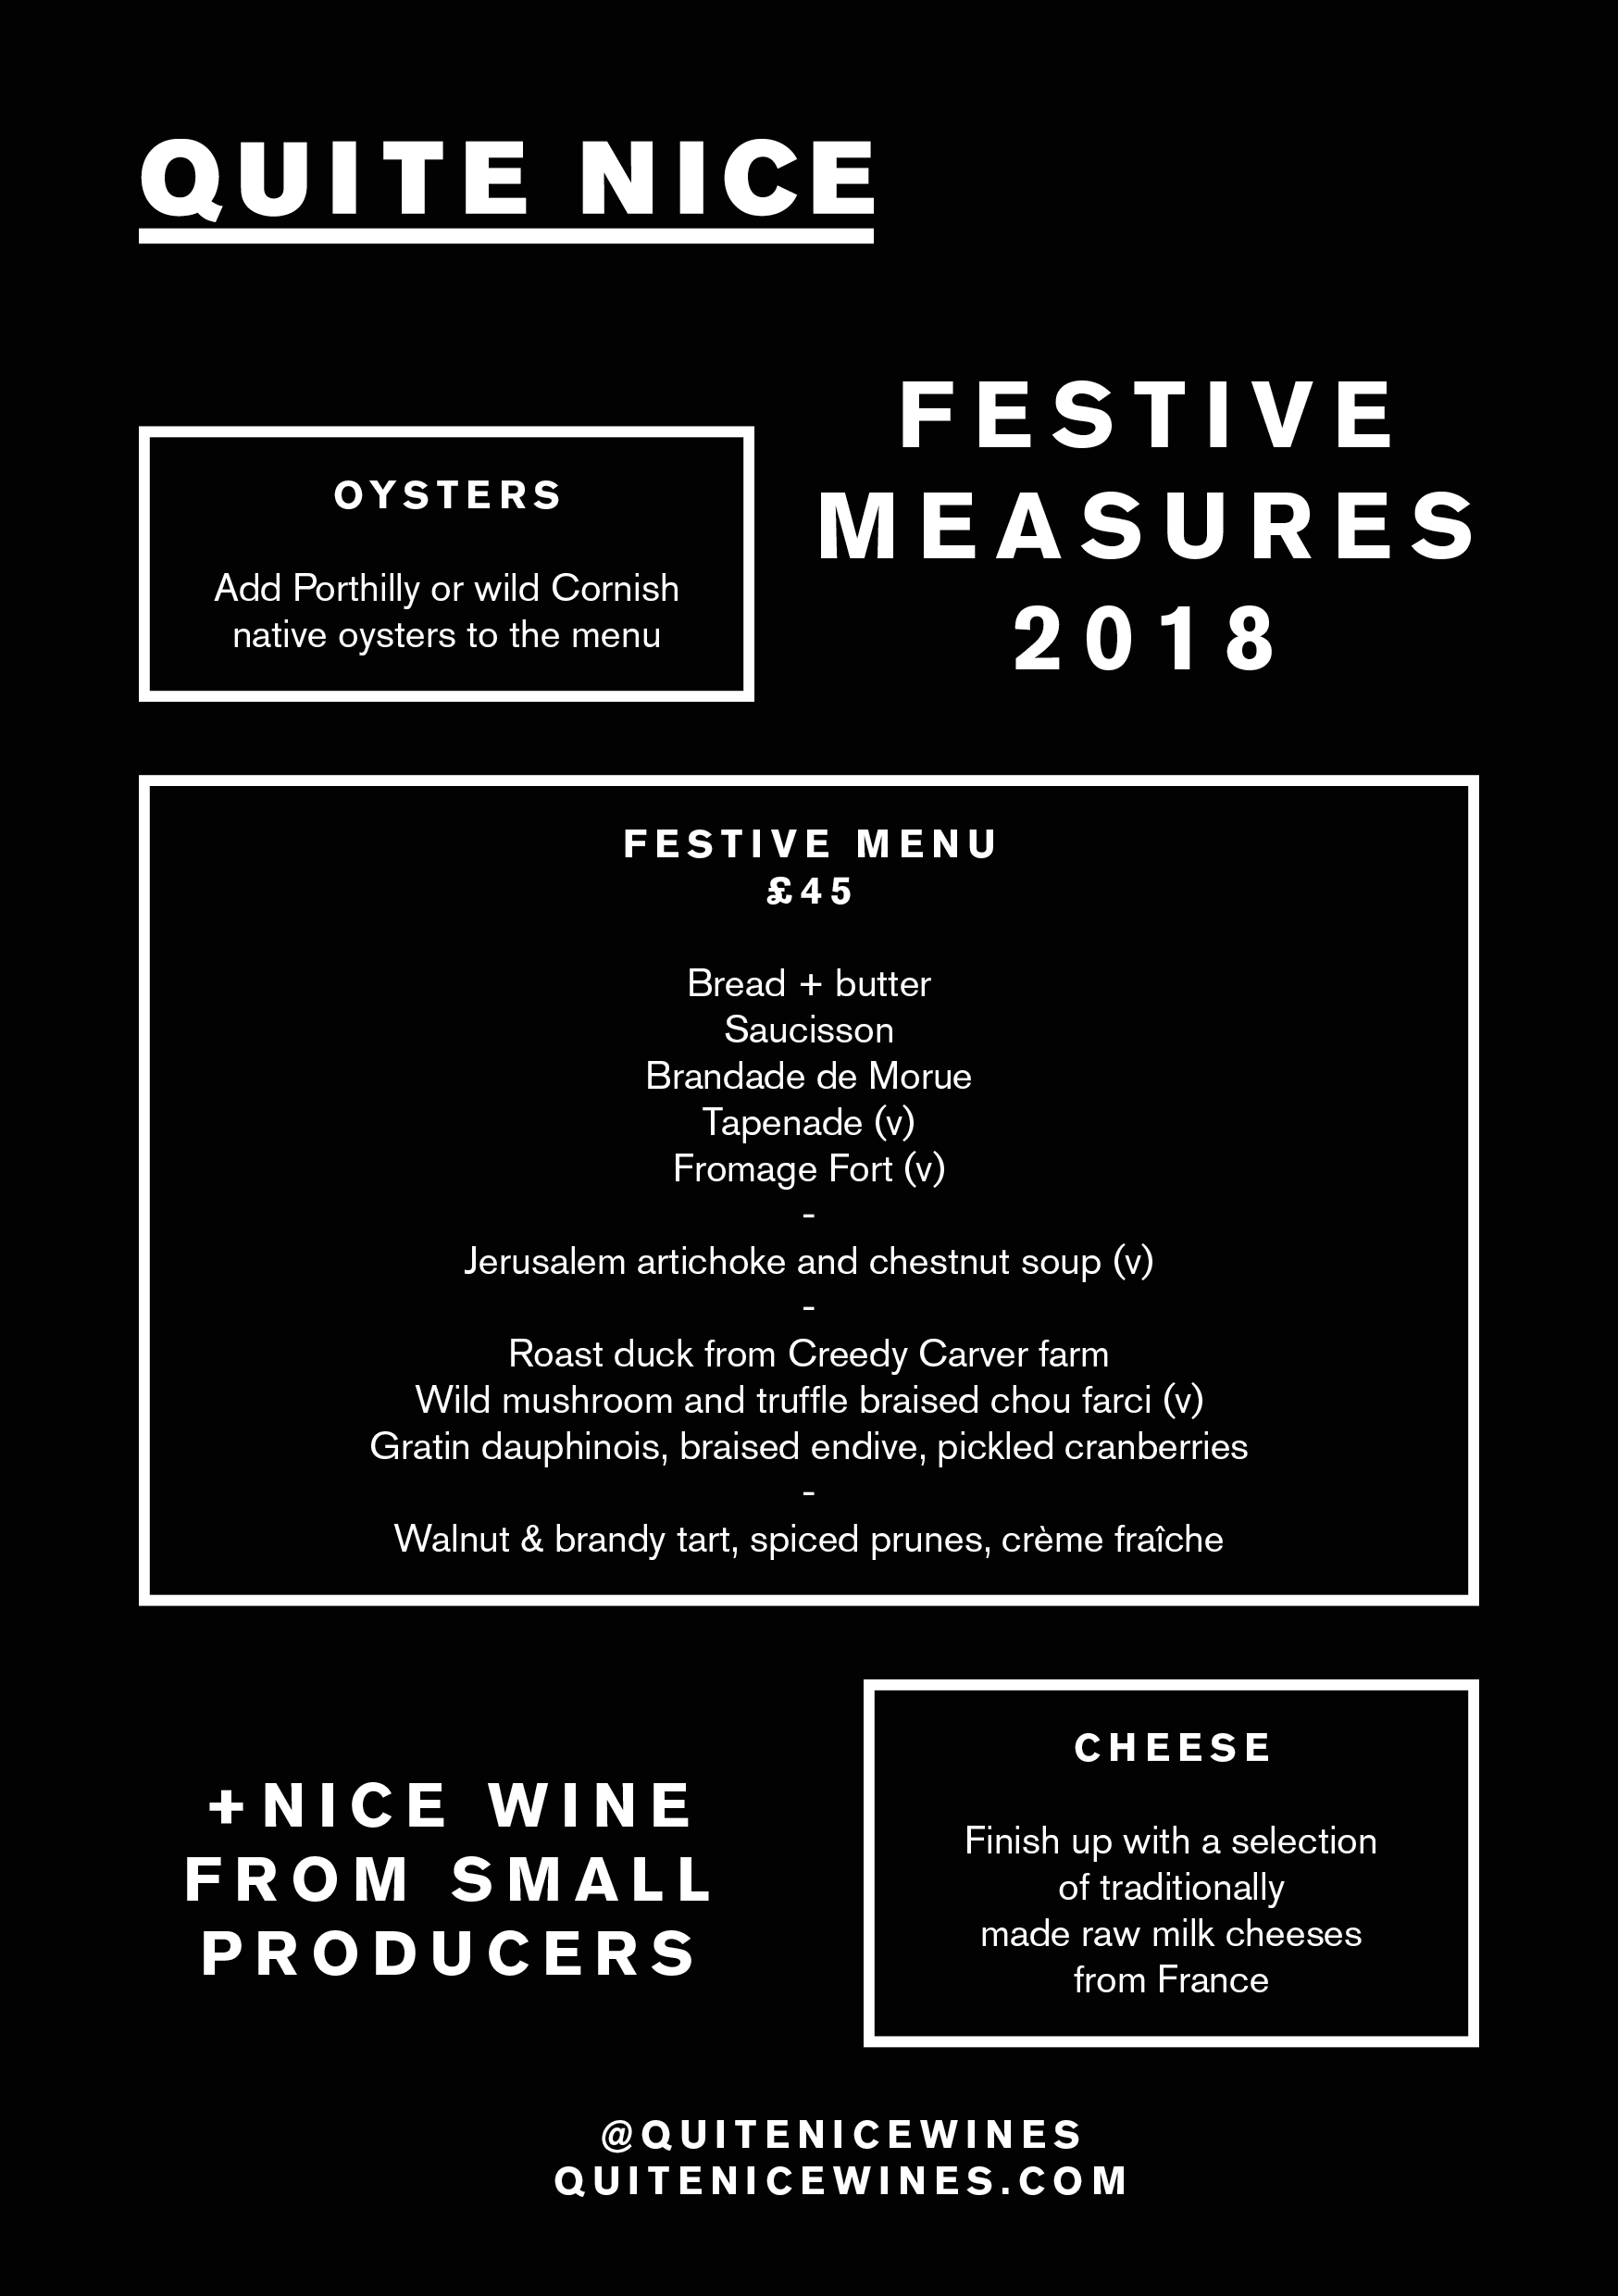 Festive Measures Final Menu.png